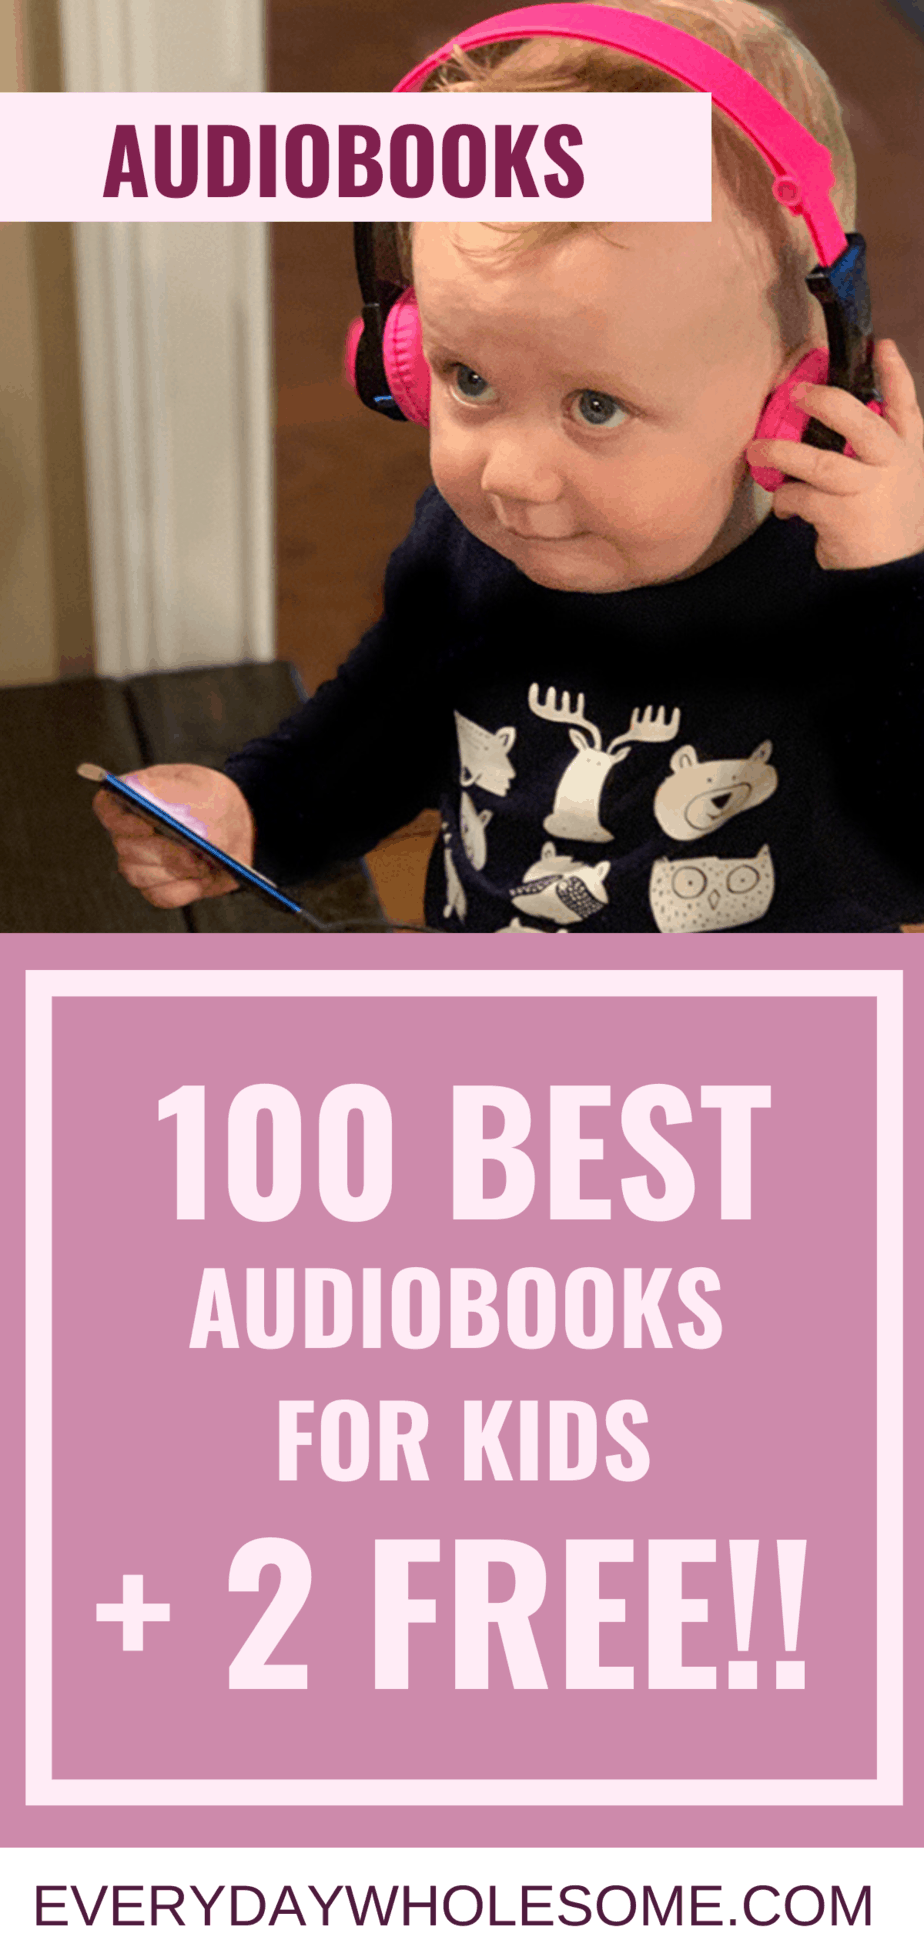 6 Places to Find Free Audio Books for Kids - Learning Liftoff